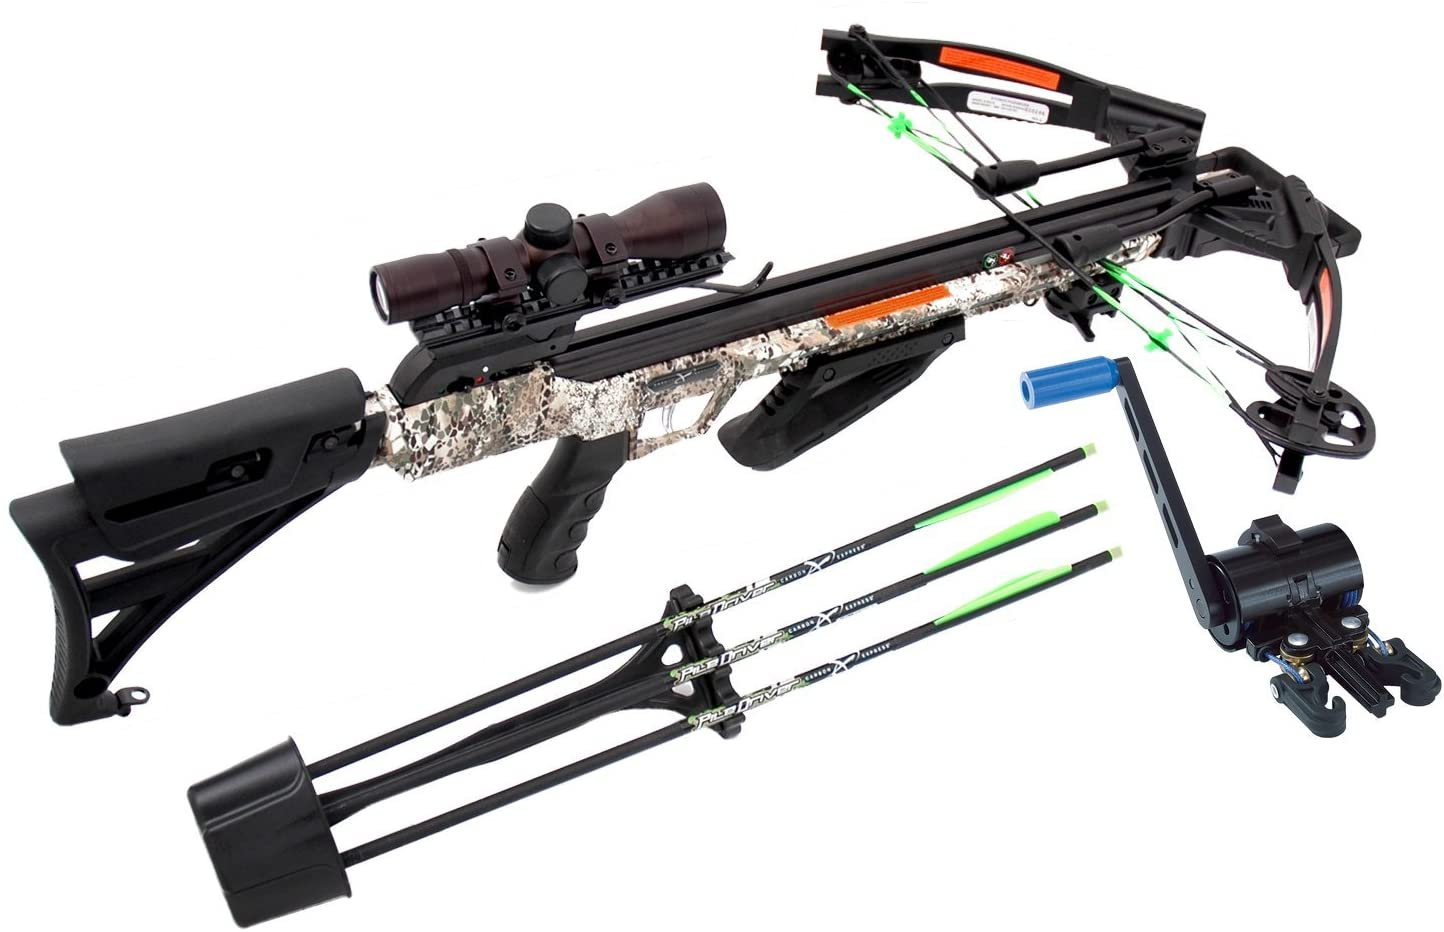 Carbon Express Blade Pro Crossbow